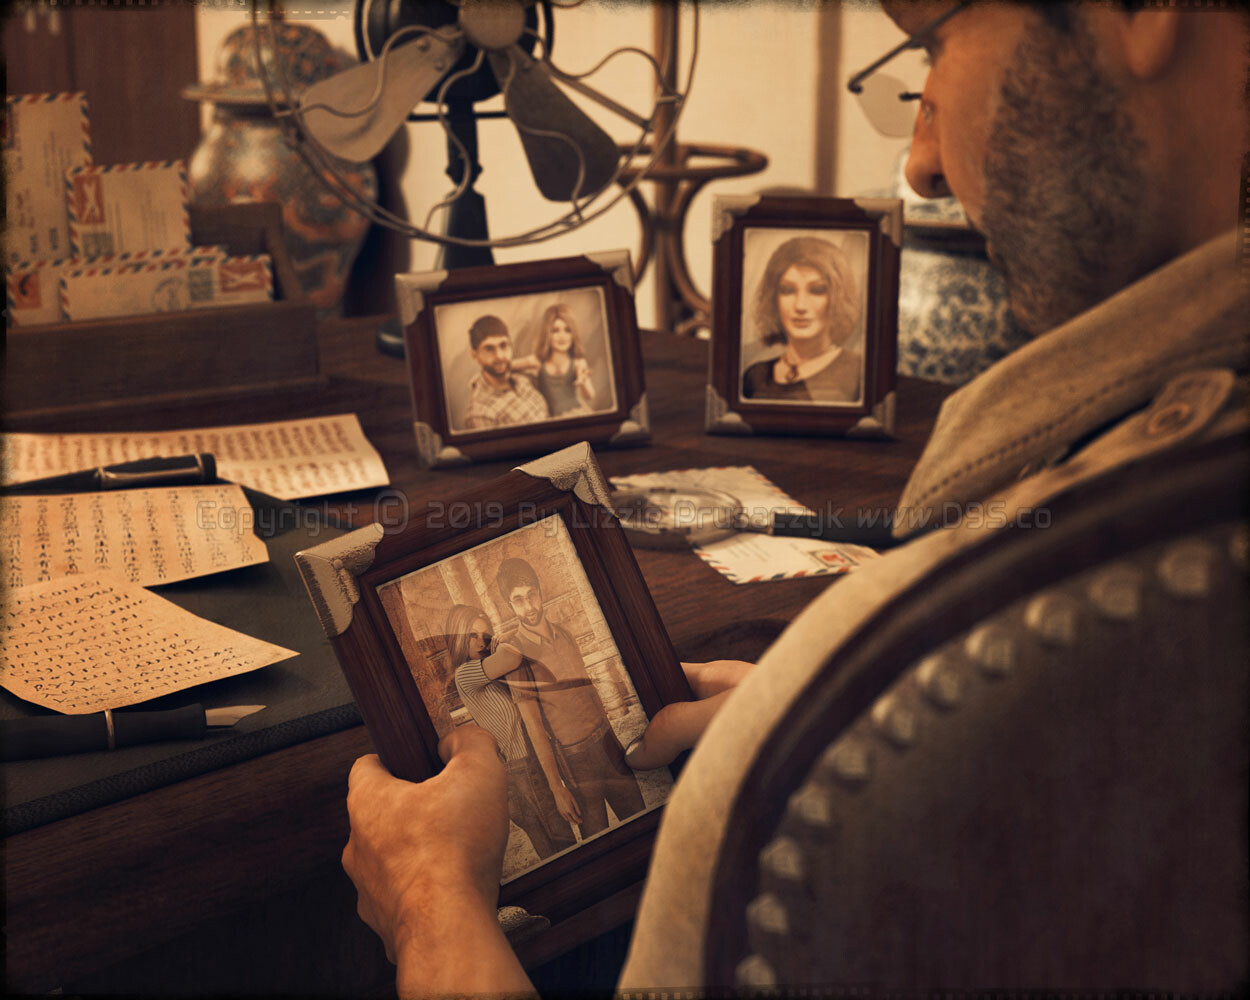 Robert Bly sits in his office while looking back to the past via his collection of cherished photographs. From the Shelby Bly Project; an original adventure story graphic novel project.